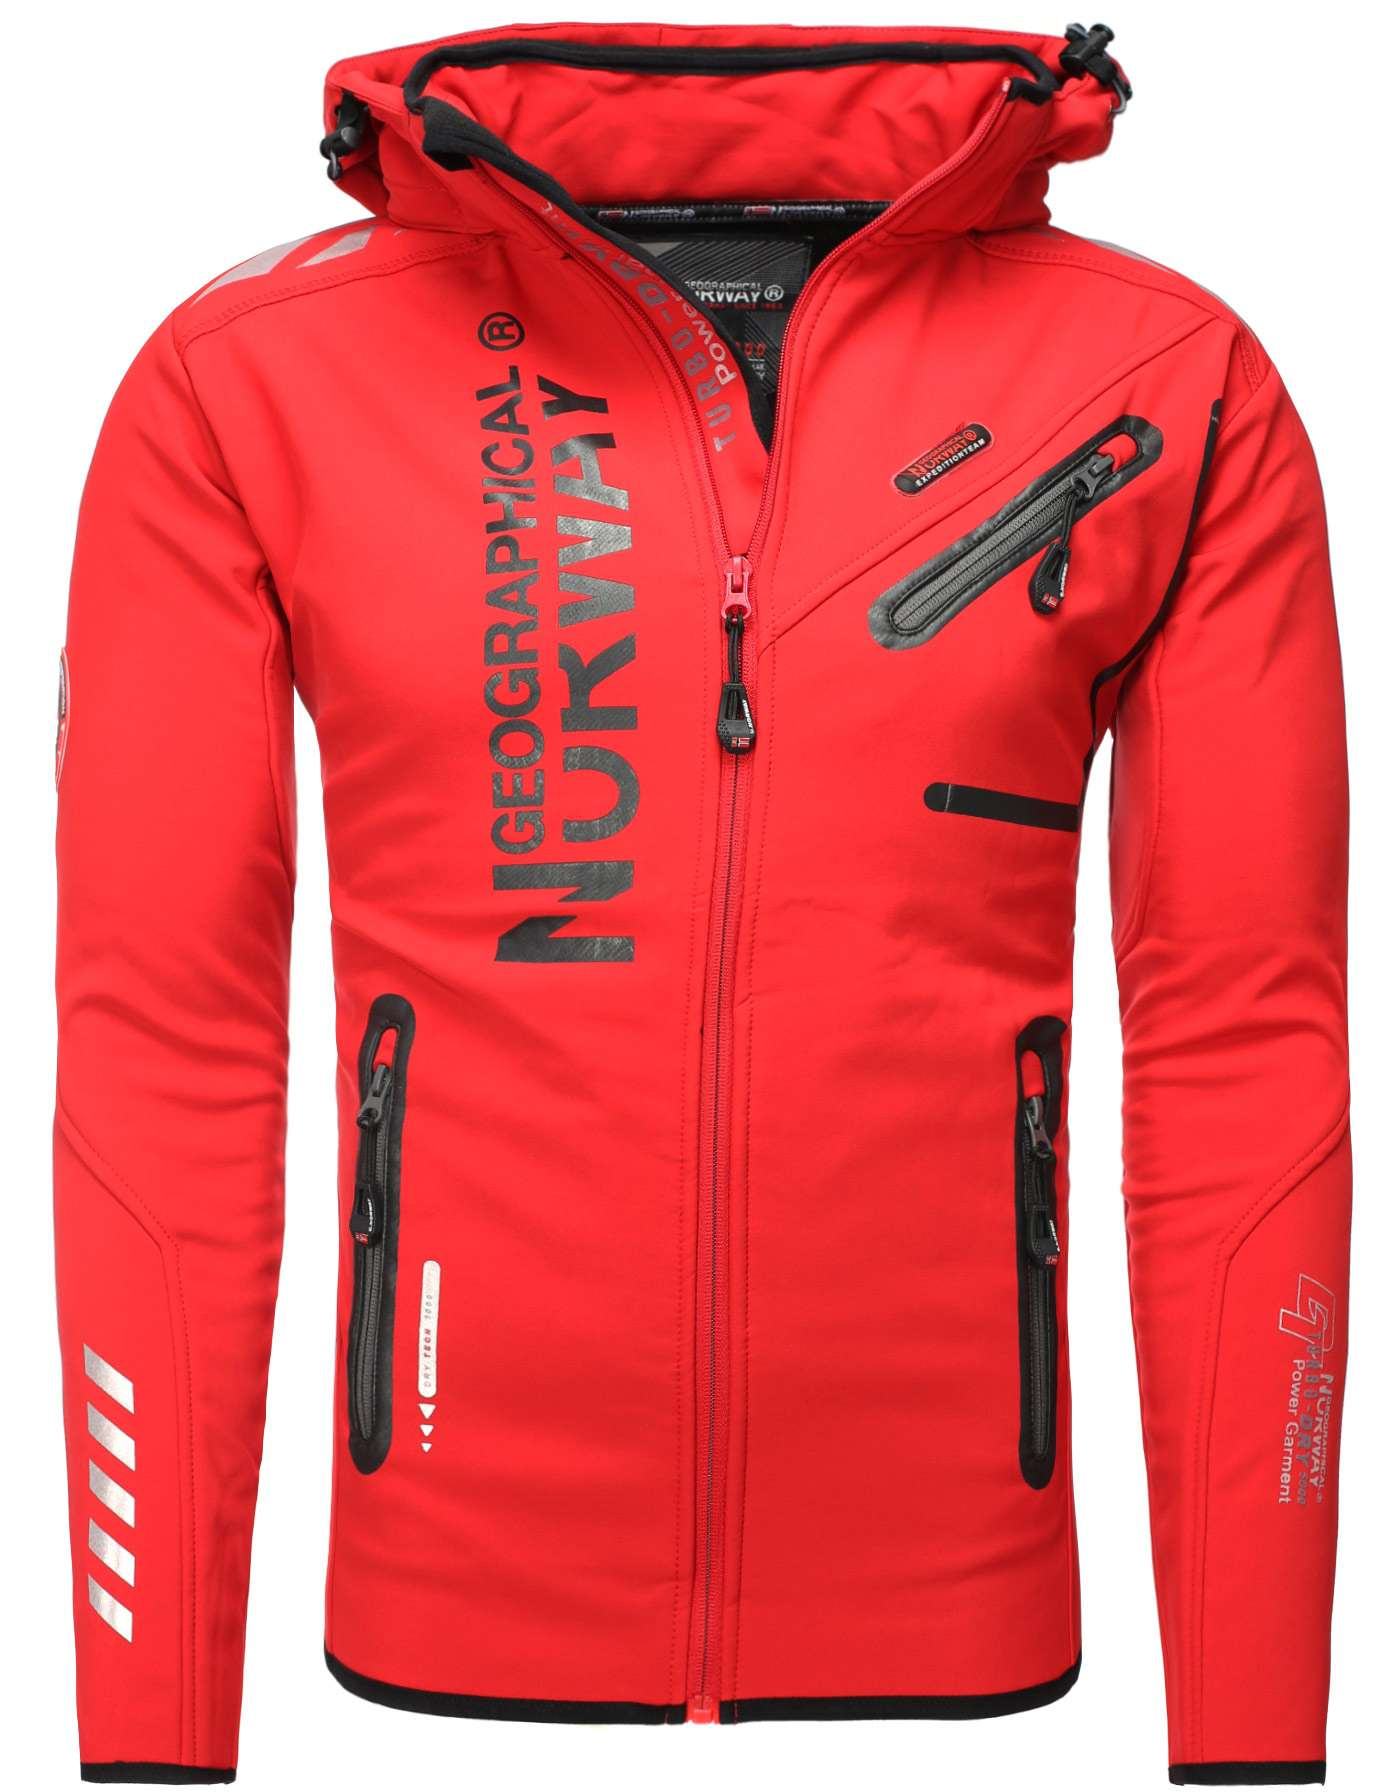 reputable site bdf7d 52bc9 SOFTSHELL GIACCA GEOGRAPHICAL NORWAY RAINMAN